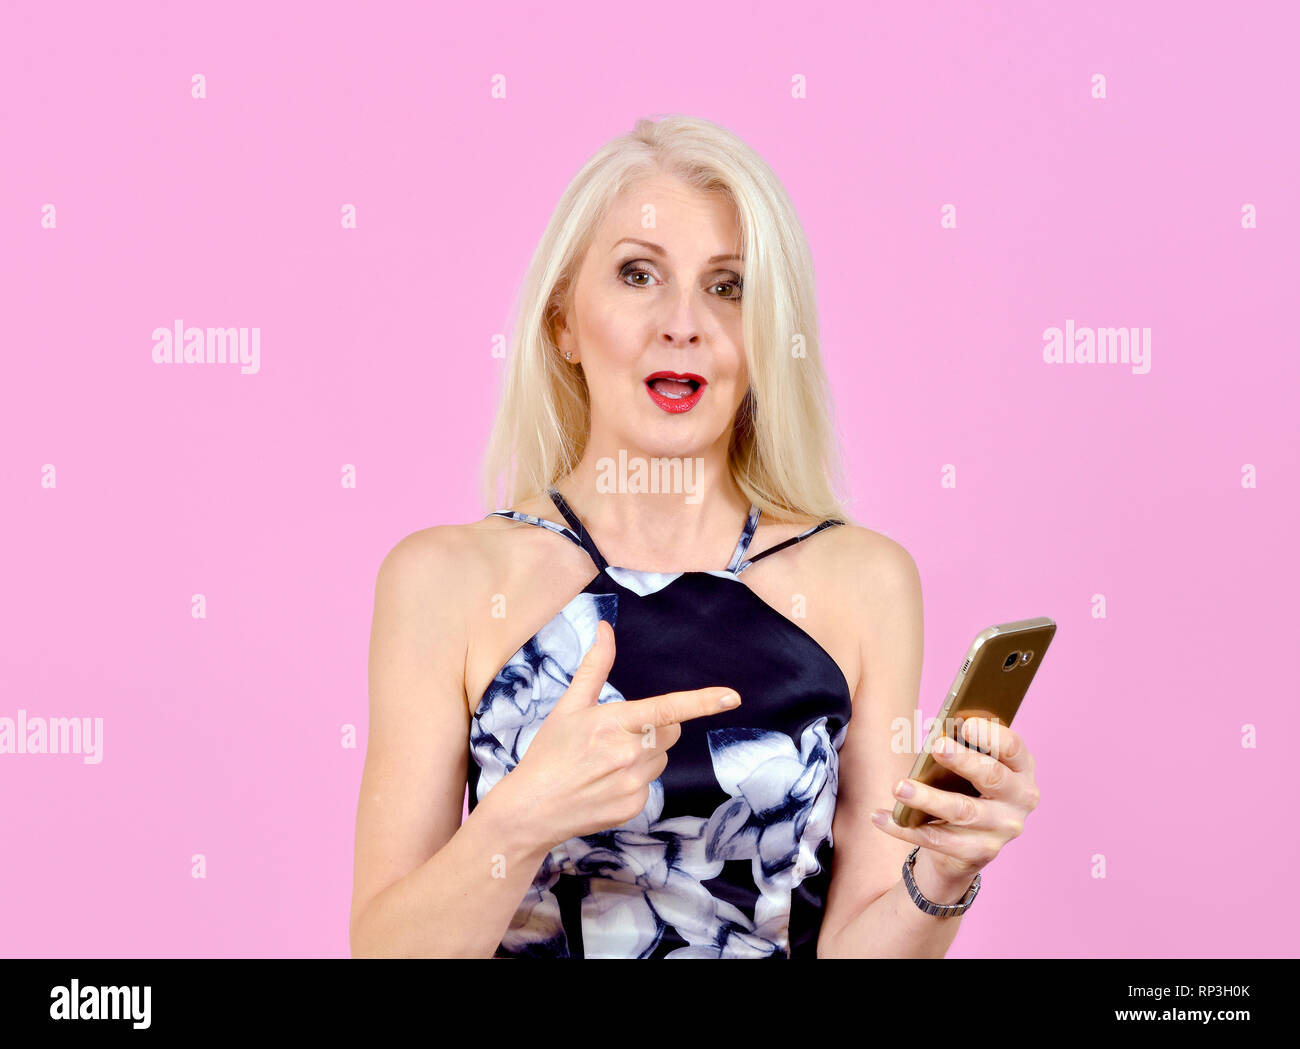 Attractive woman pointing at her mobile phone with a look of disbelief at whats just come in on her phone - Stock Image